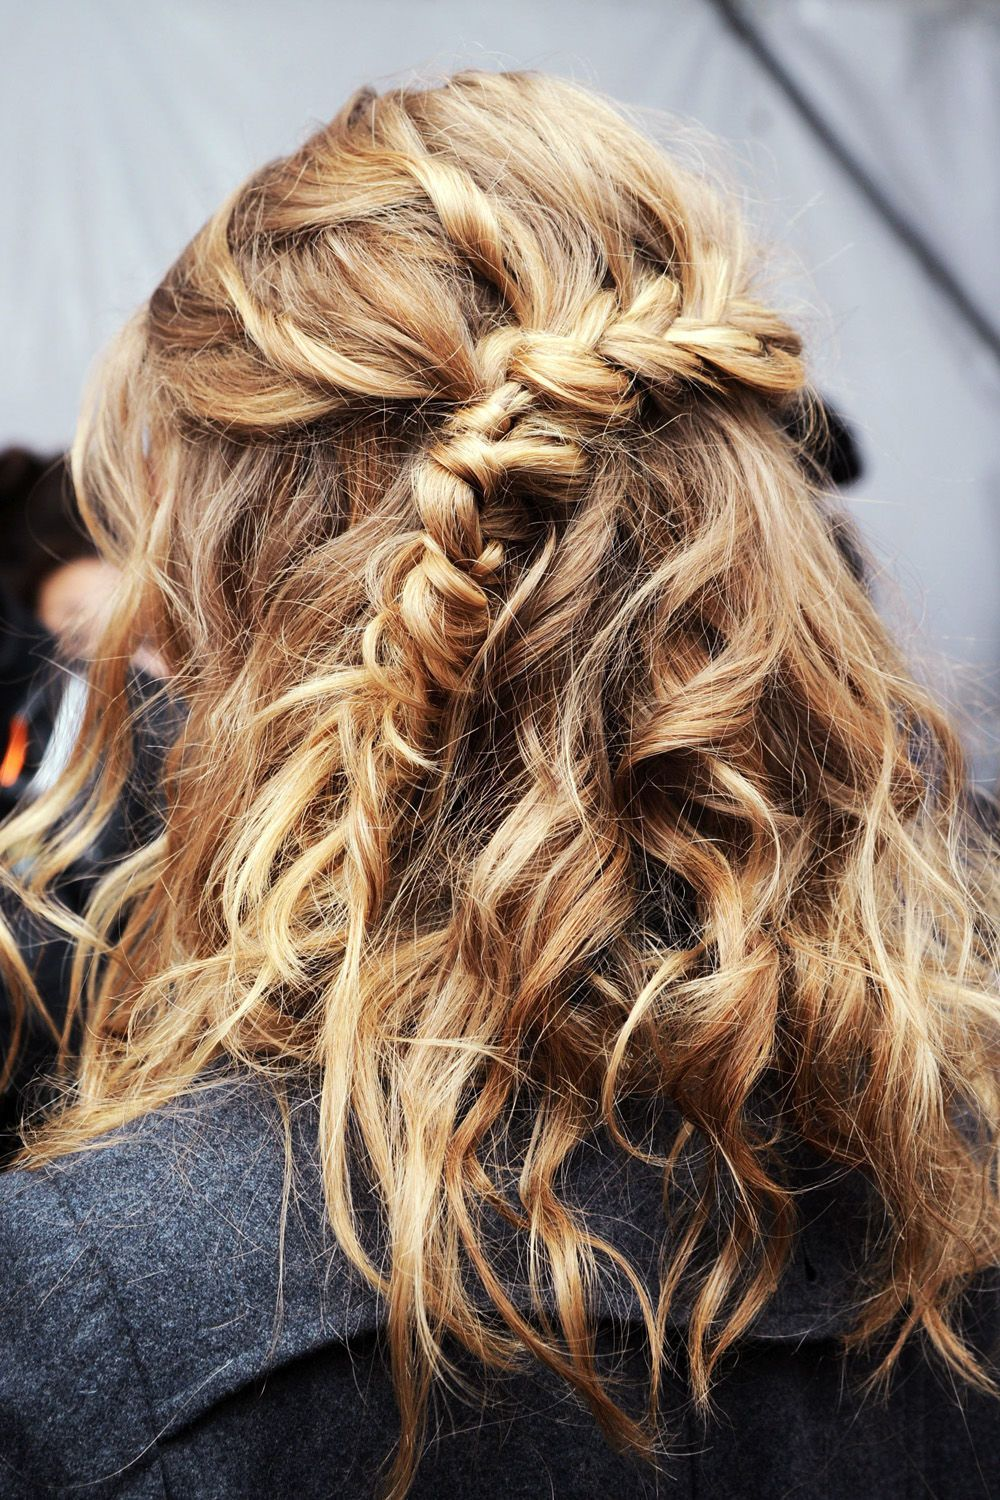 Hair style  Hairstyles  Pinterest  Messy braids Hair style and